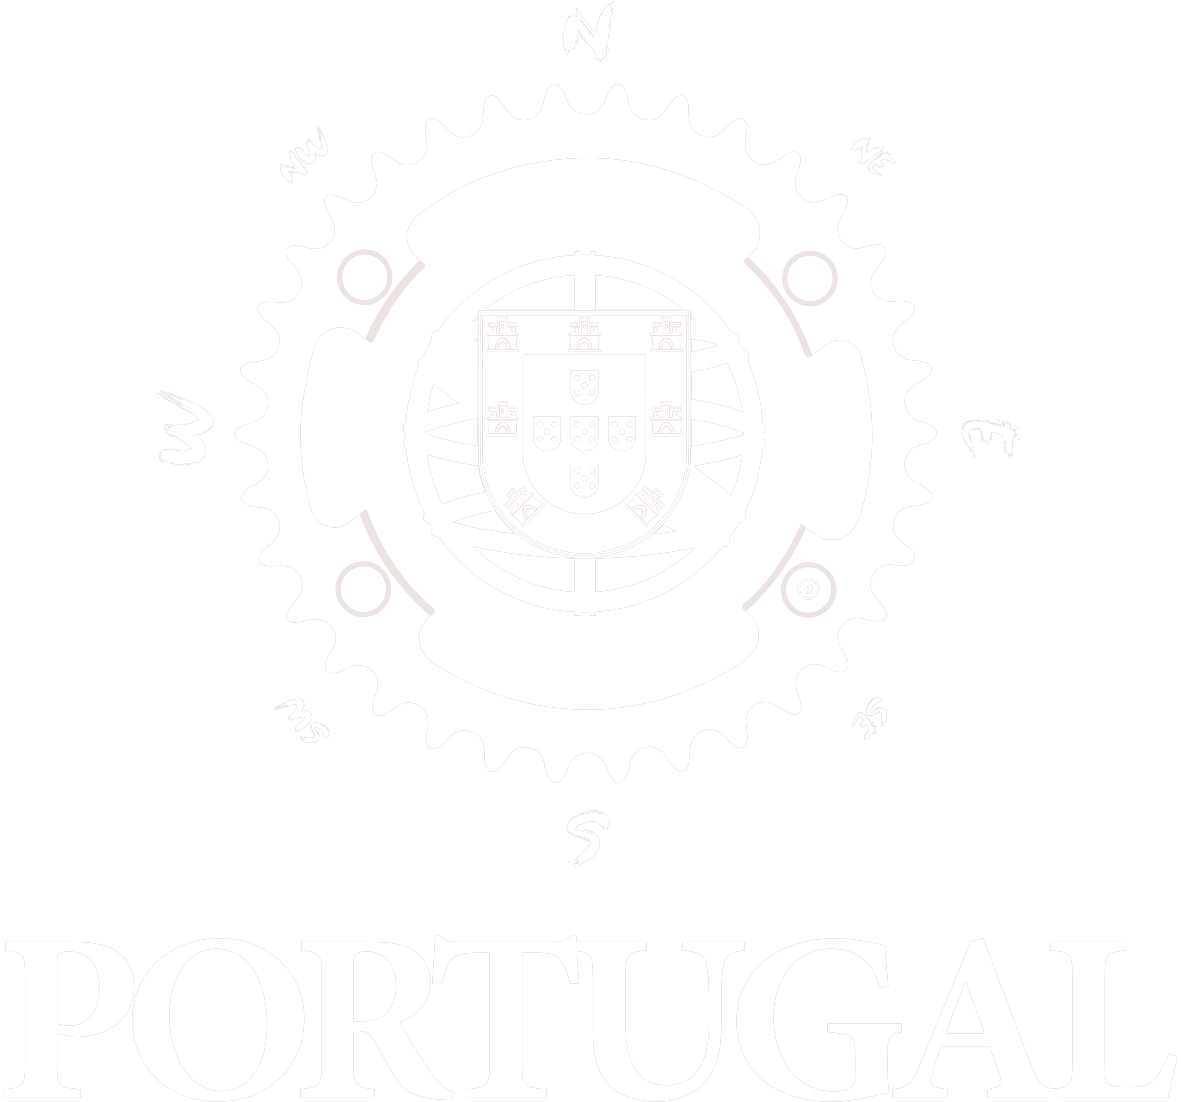 Portugal Sprint RACE BIKINGMAN | Race type